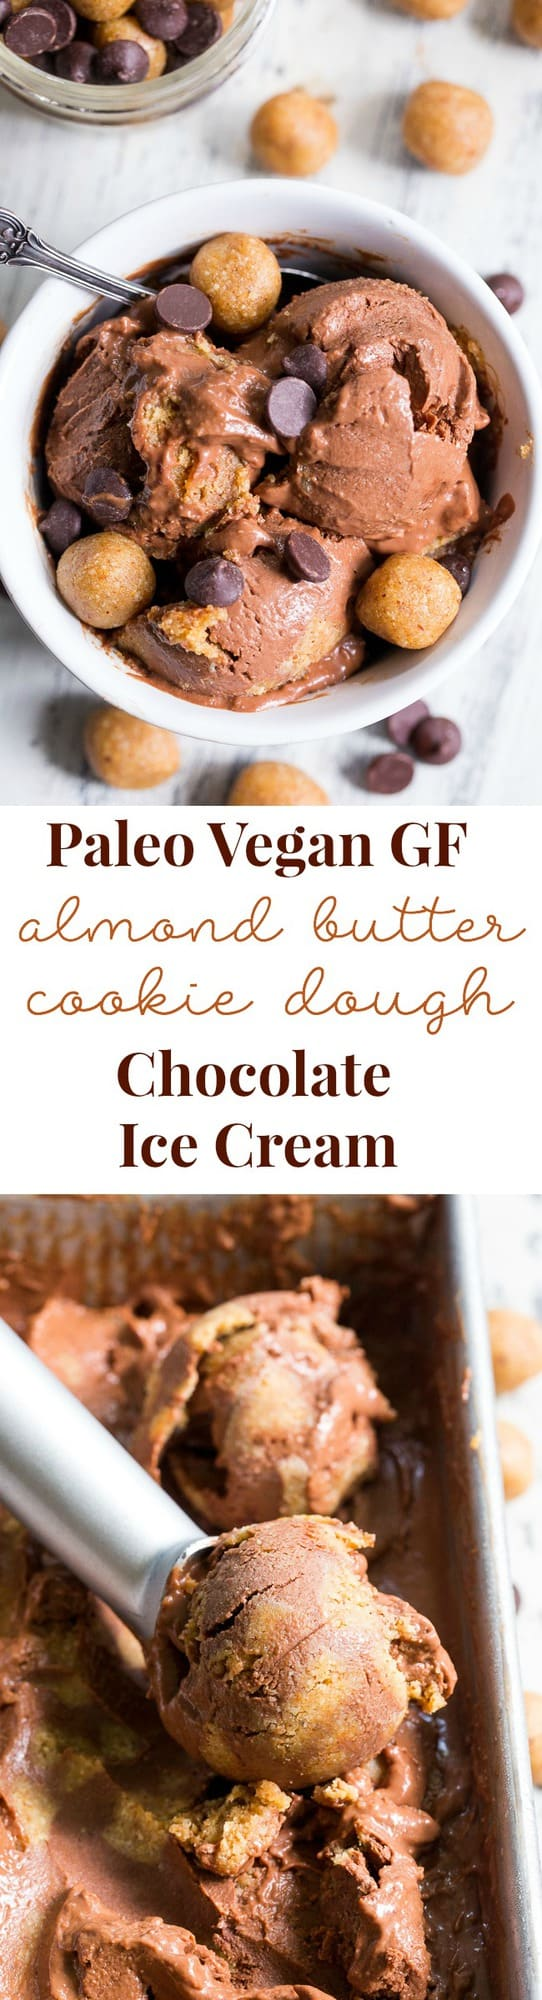 Vegan No Churn Ice Cream Chocolate Cookie Dough